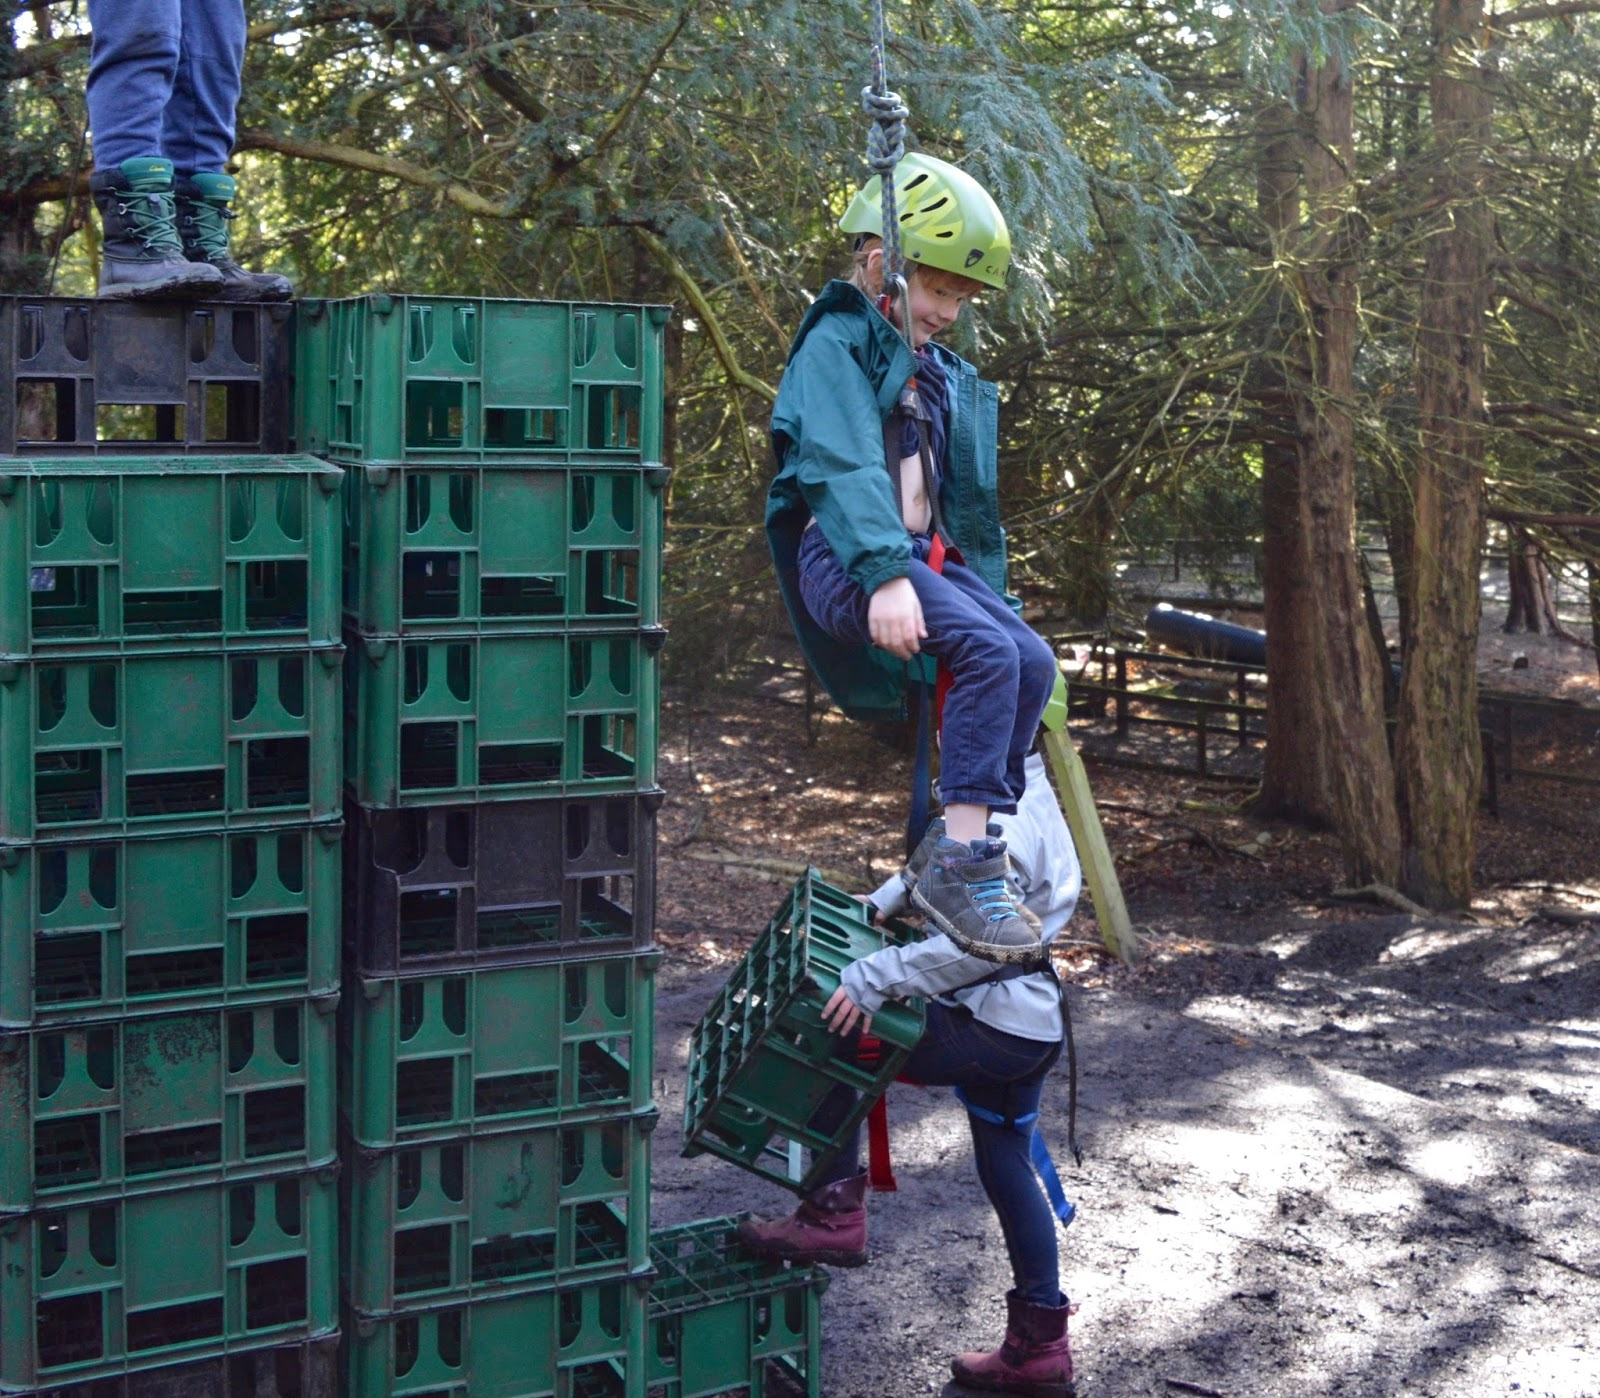 Beamish Wild | School Holiday Club & Activities in County Durham | North East England - crate stack